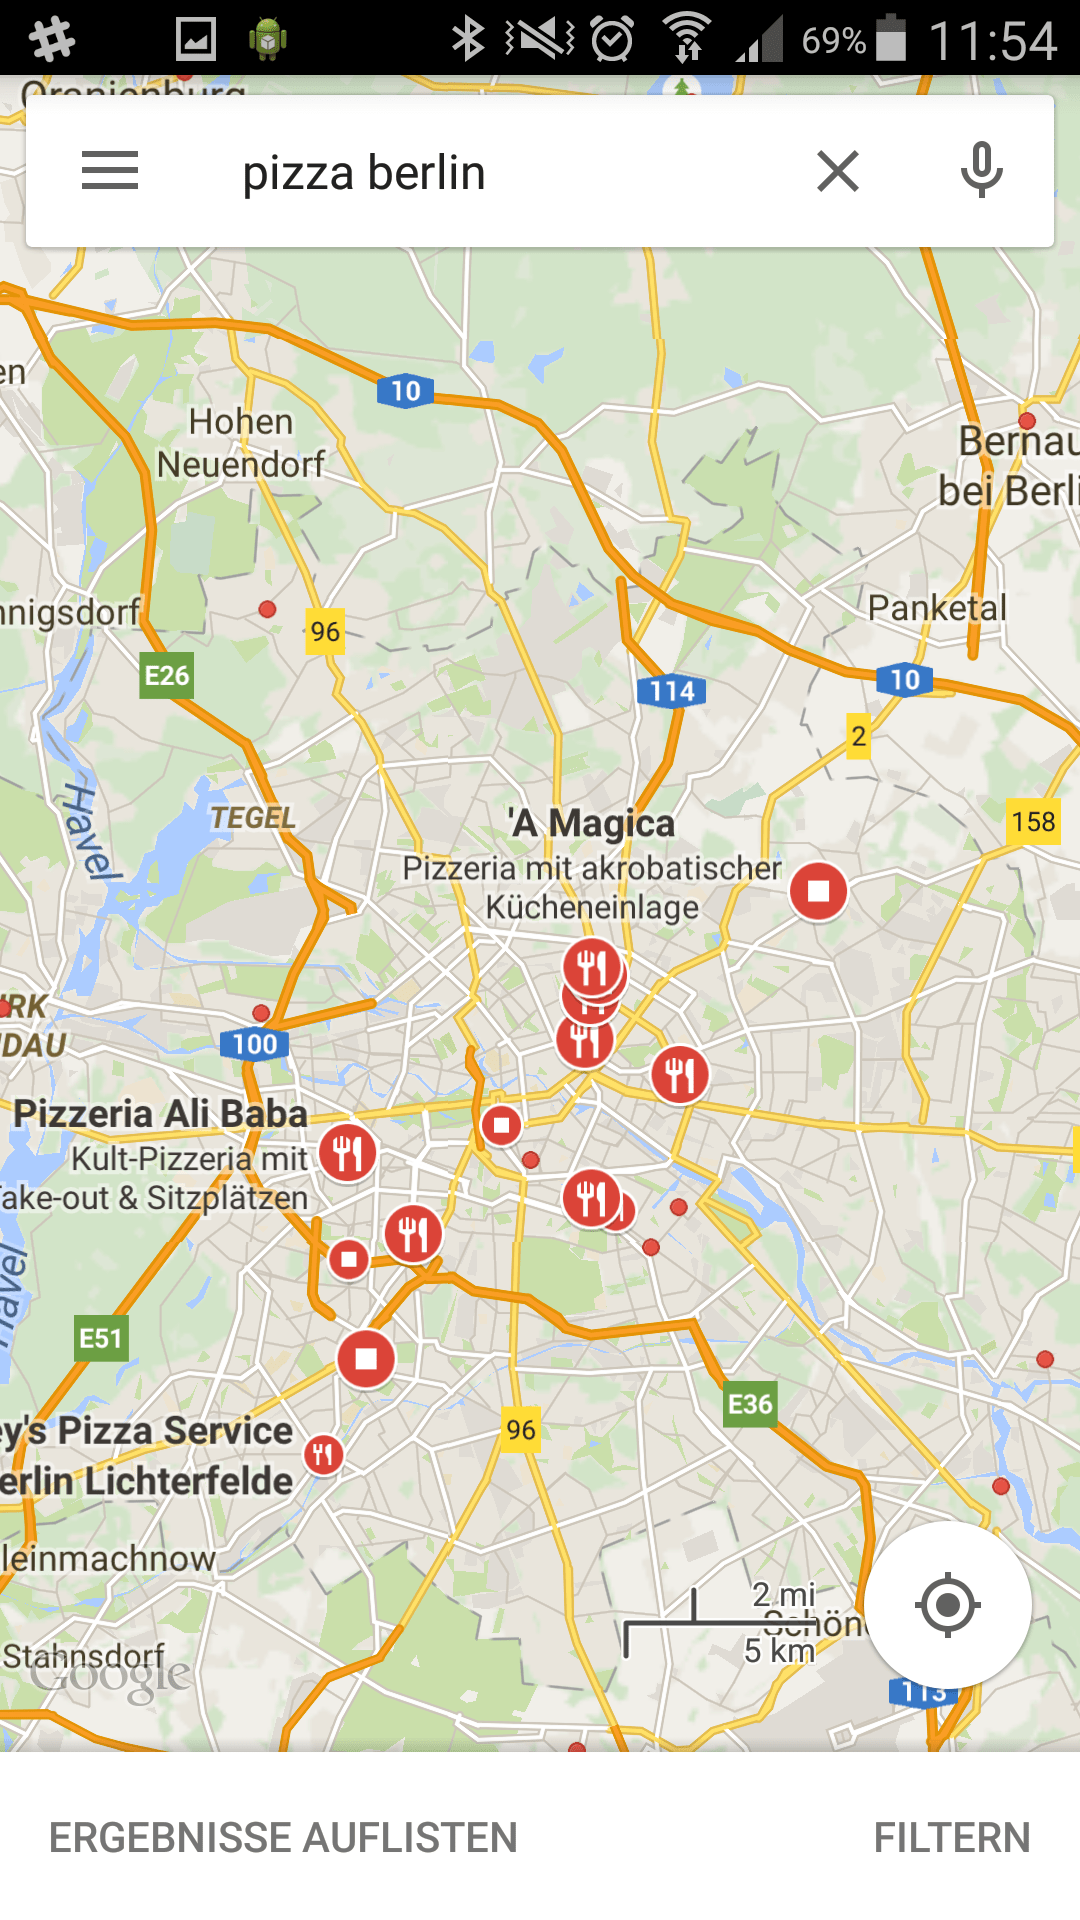 Guide: wichtigsten Google Maps-Tipps - Androidmag on